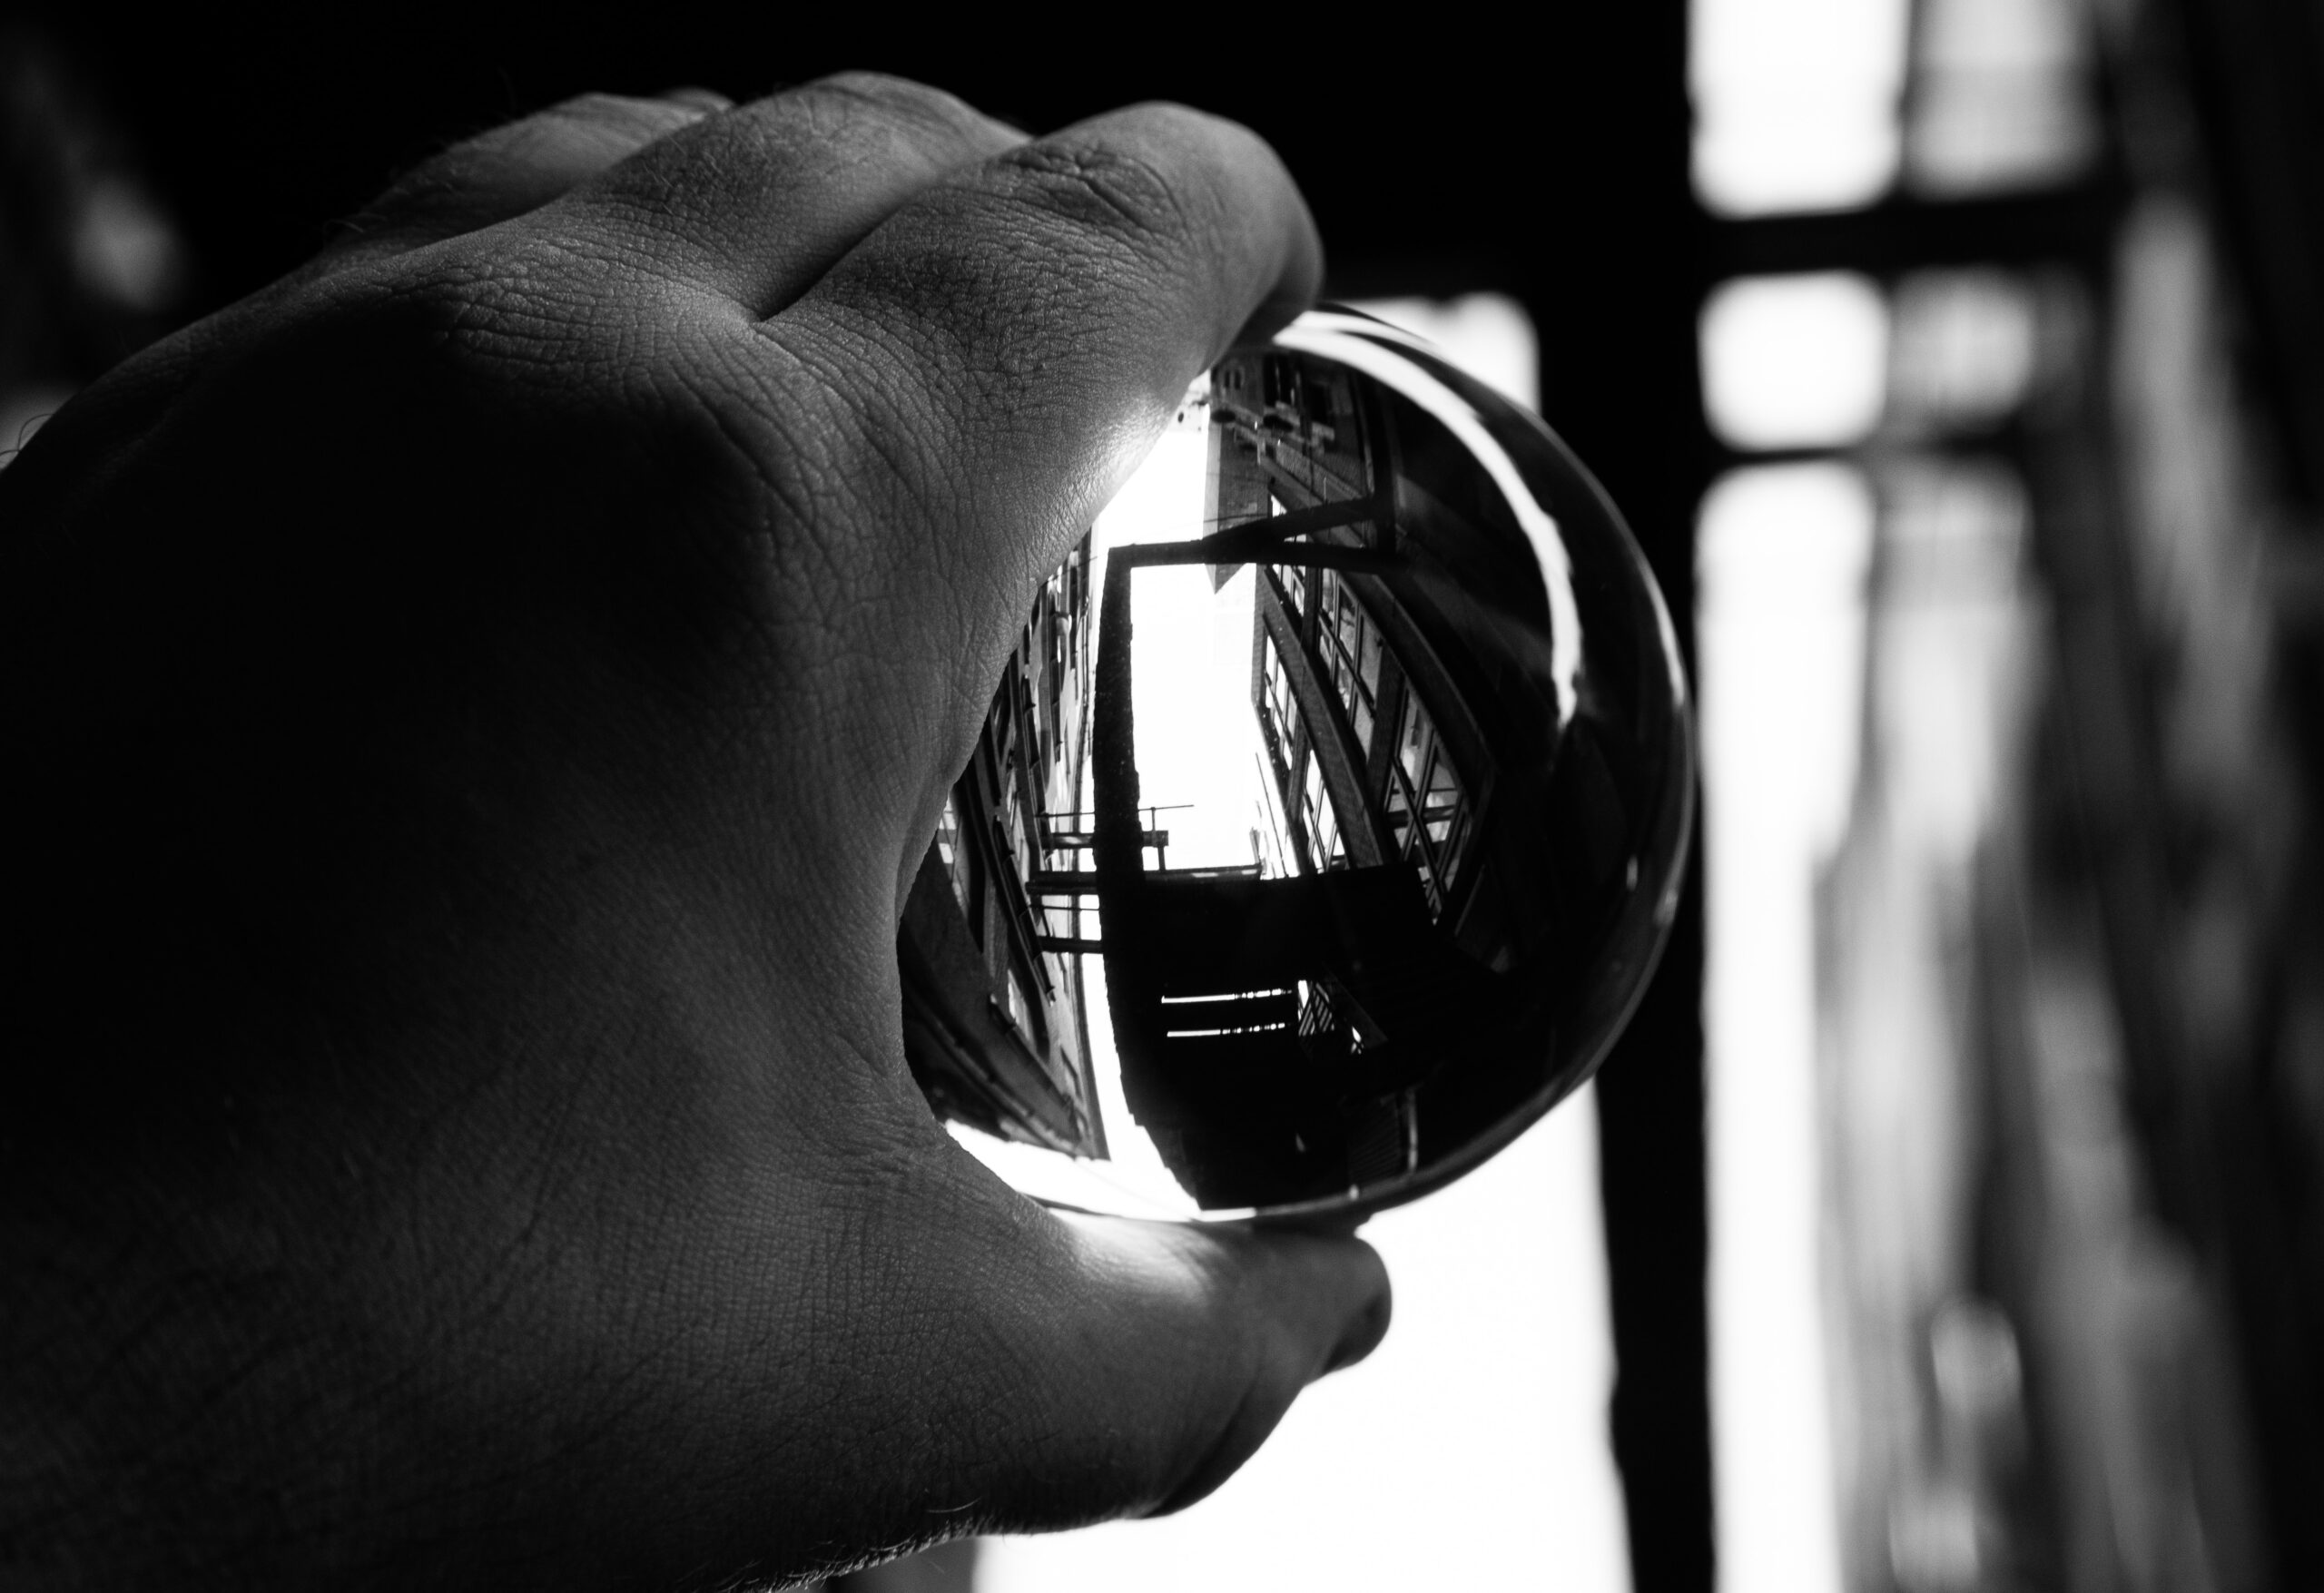 How to use a crystal ball in photography